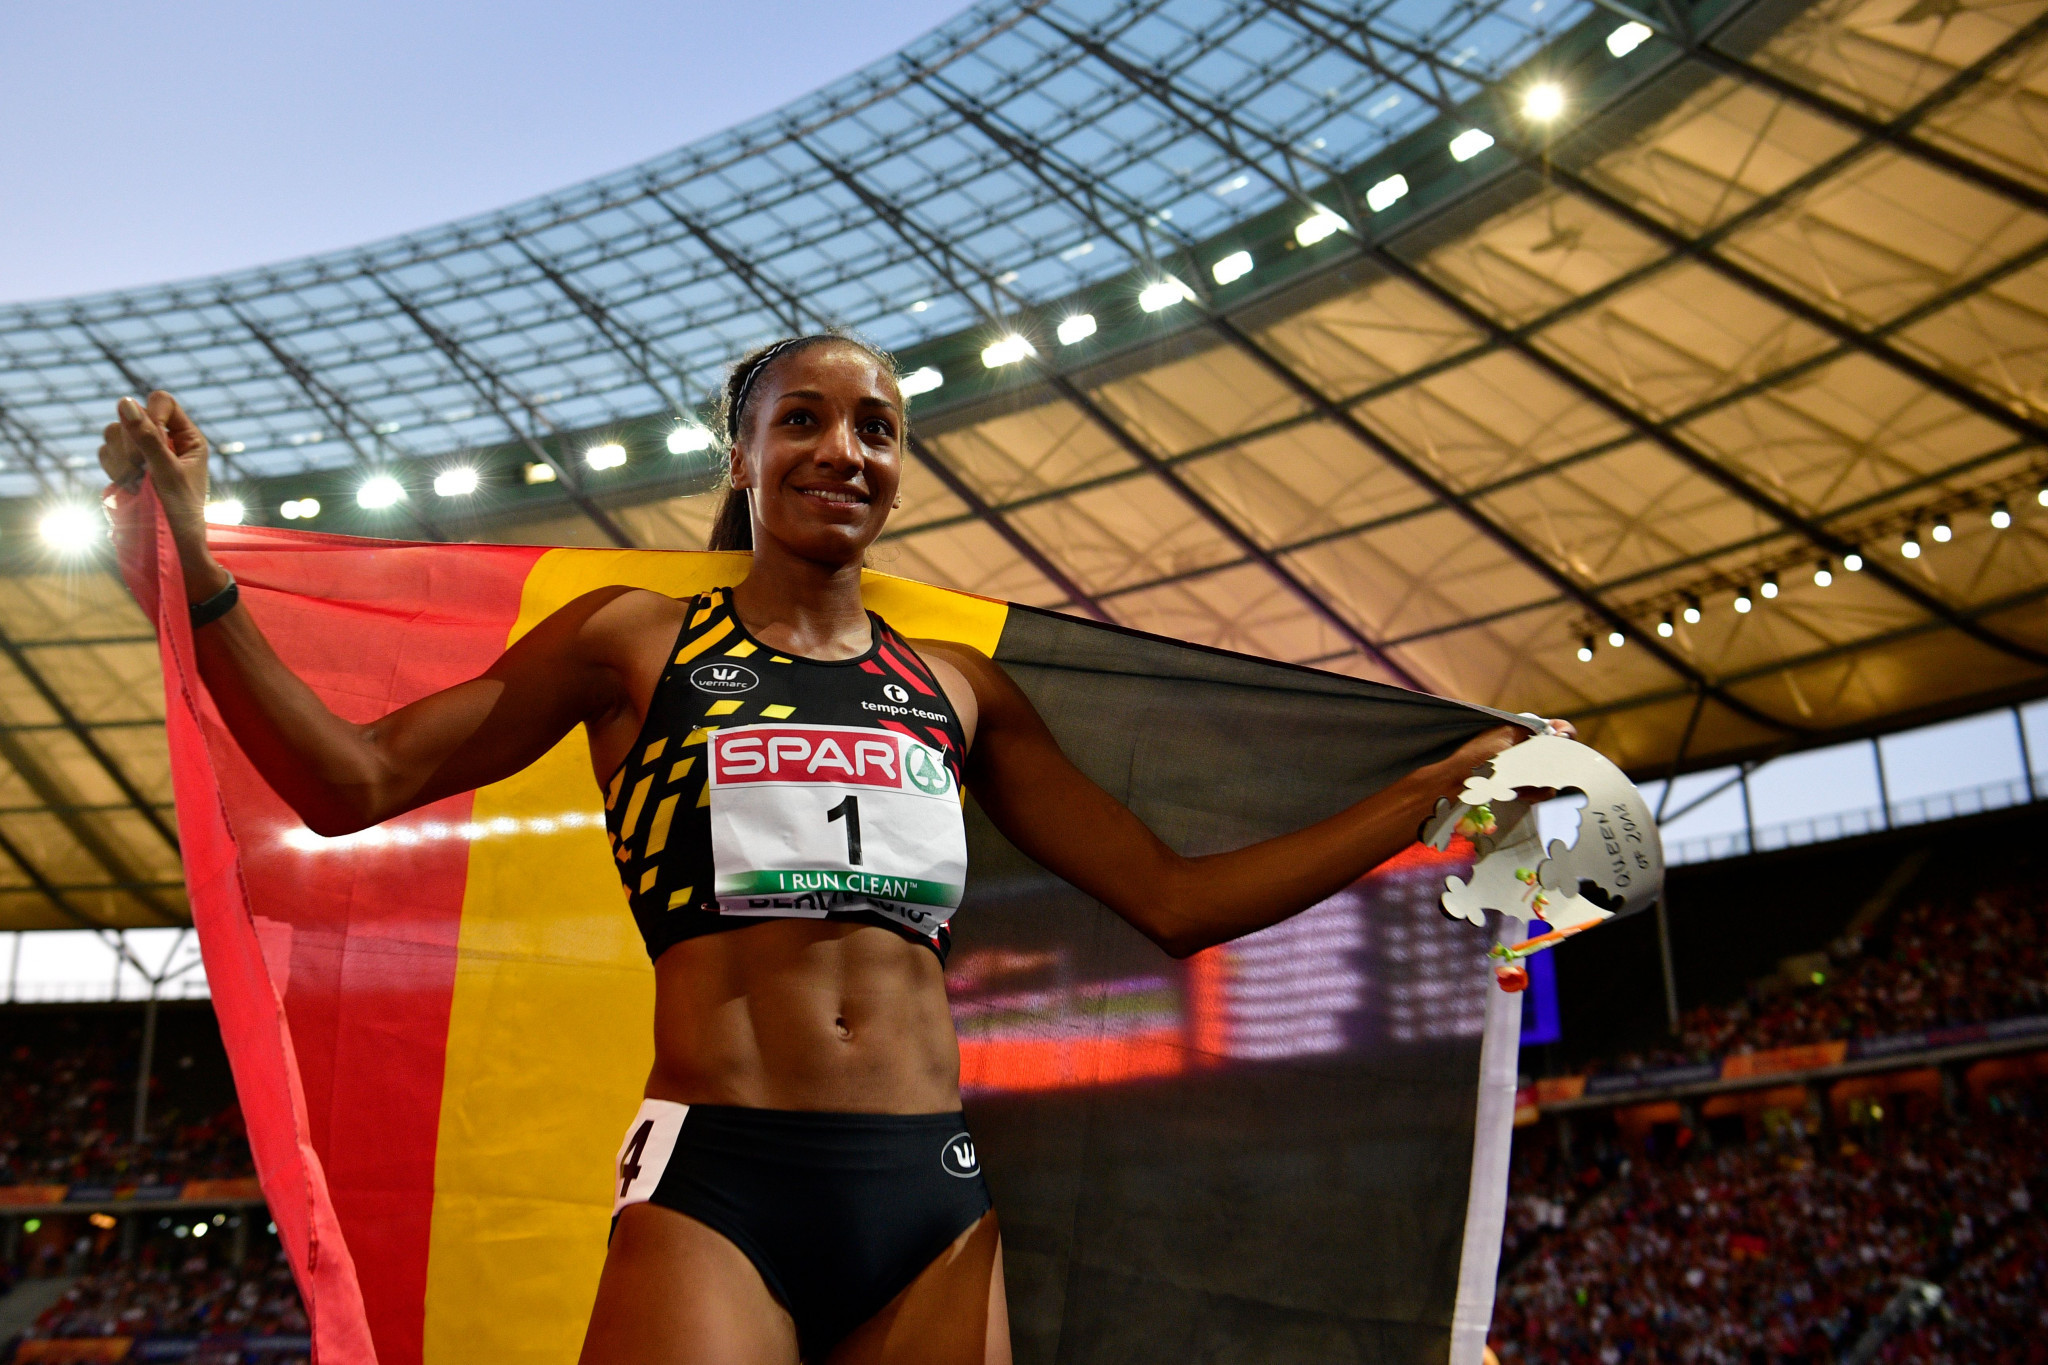 Belgian star Thiam triumphs in women's heptathlon on day nine of 2018 European Championships